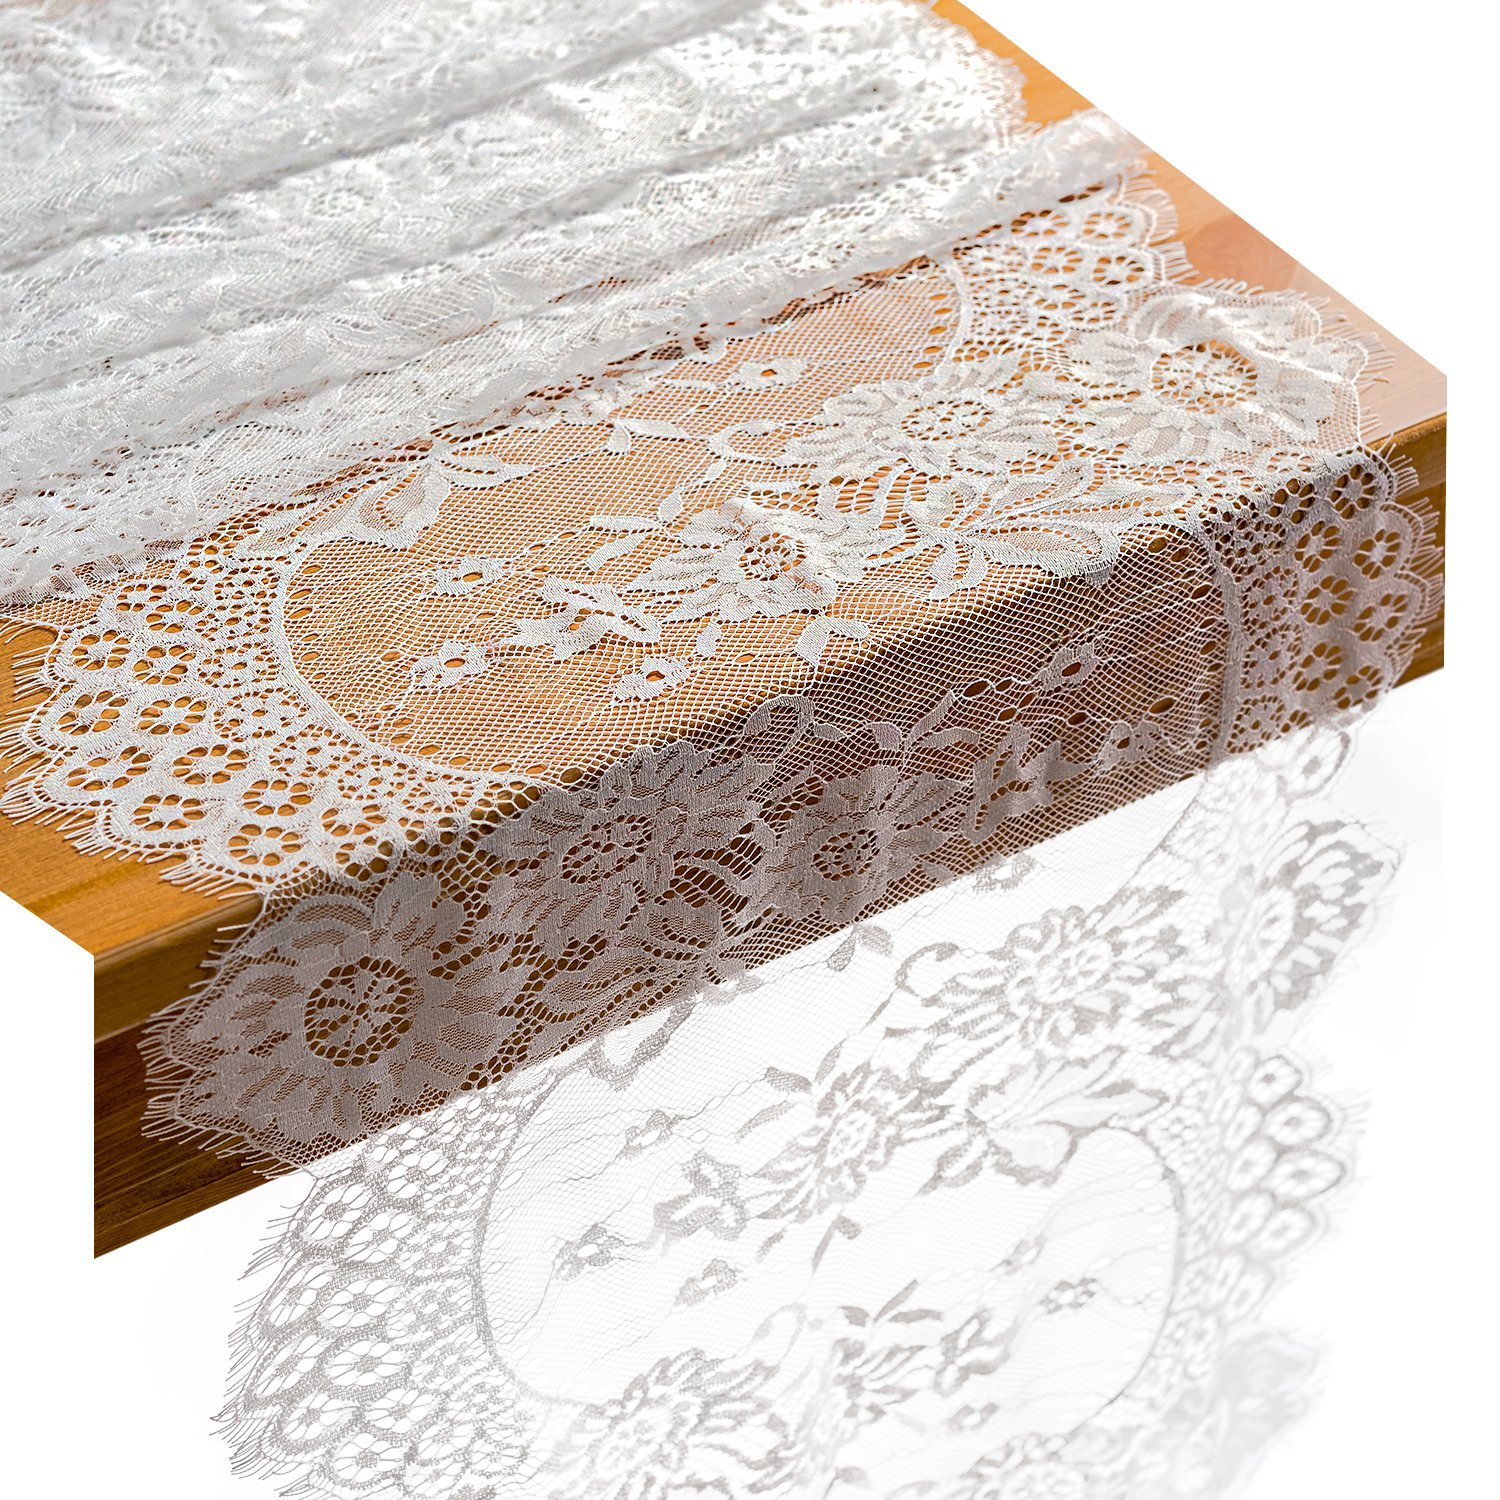 Crisky 14x120 Inch White Lace Table Runners with Rose Vintage Embroidered Boho Wedding Reception Table Decoration, Thin, Baby & Bridal Shower Party Decor package of 5